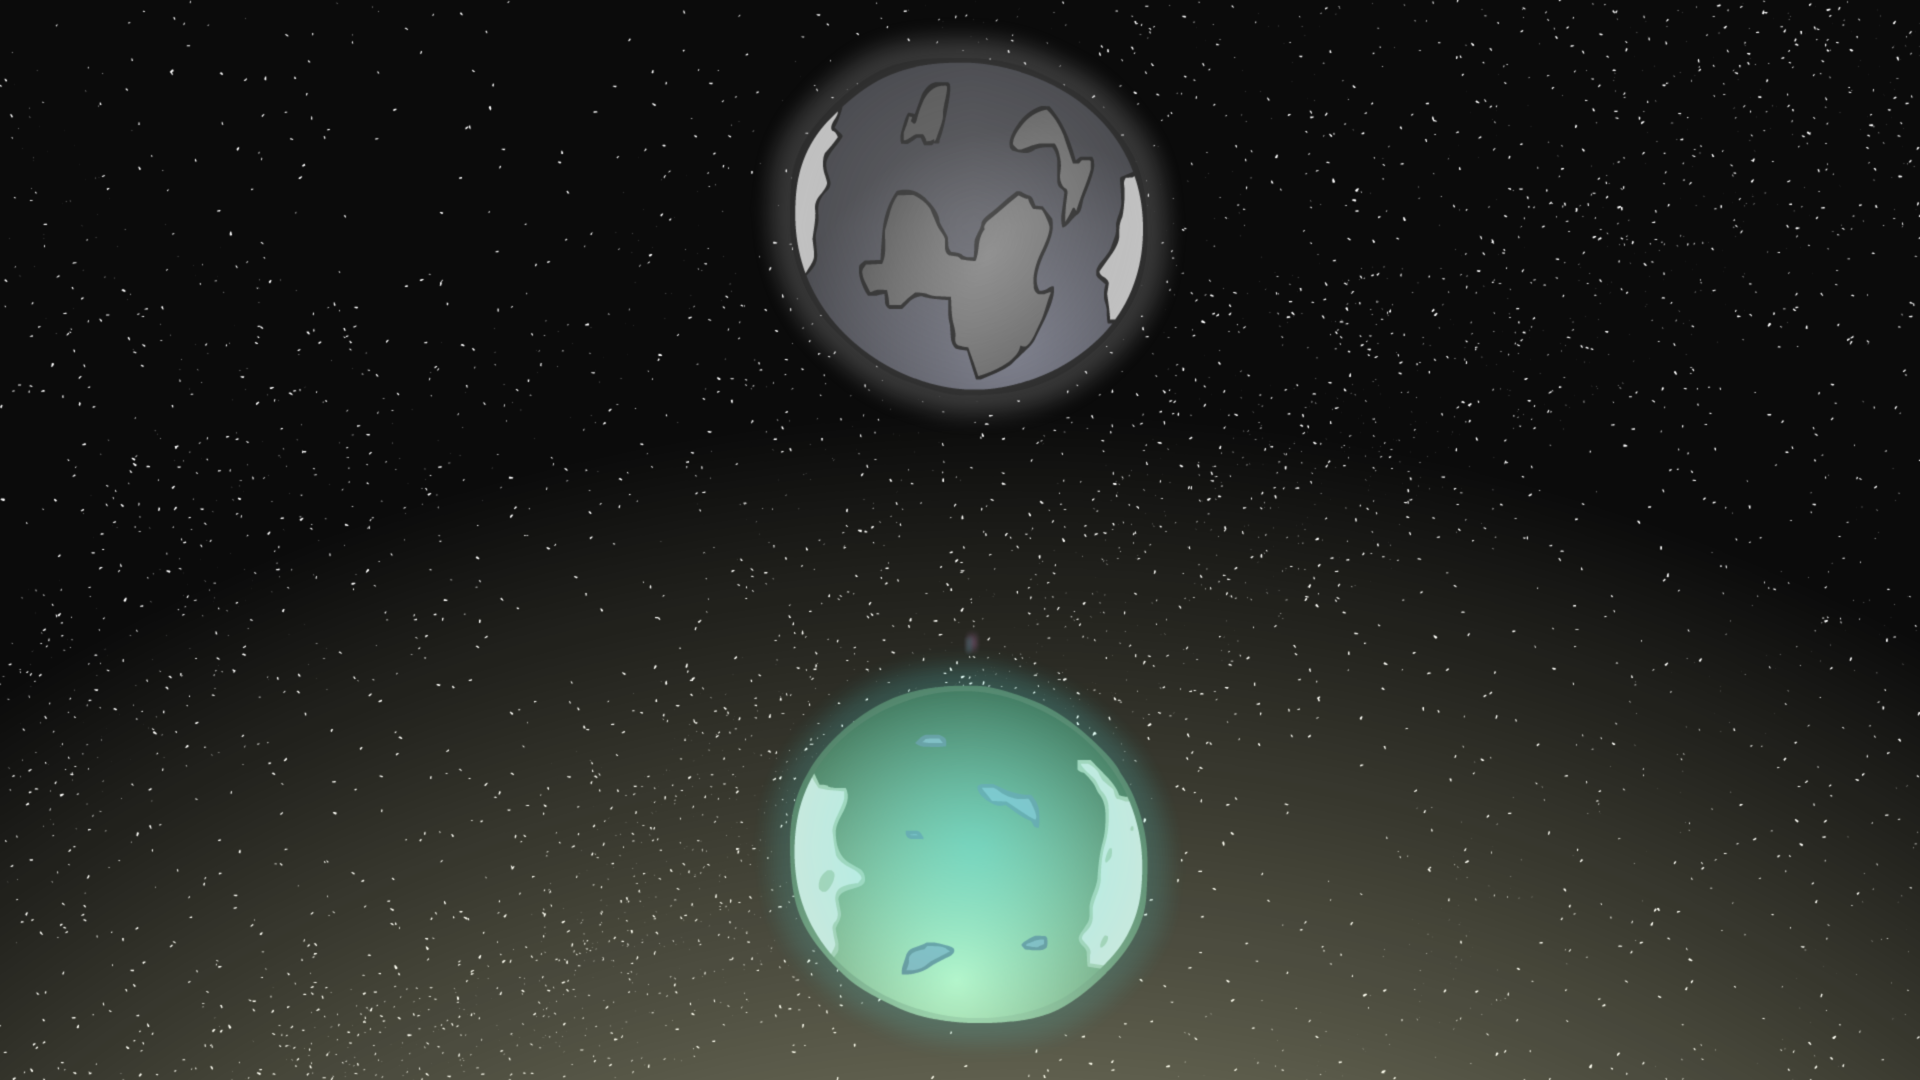 2527556_138682815262_Planets.png